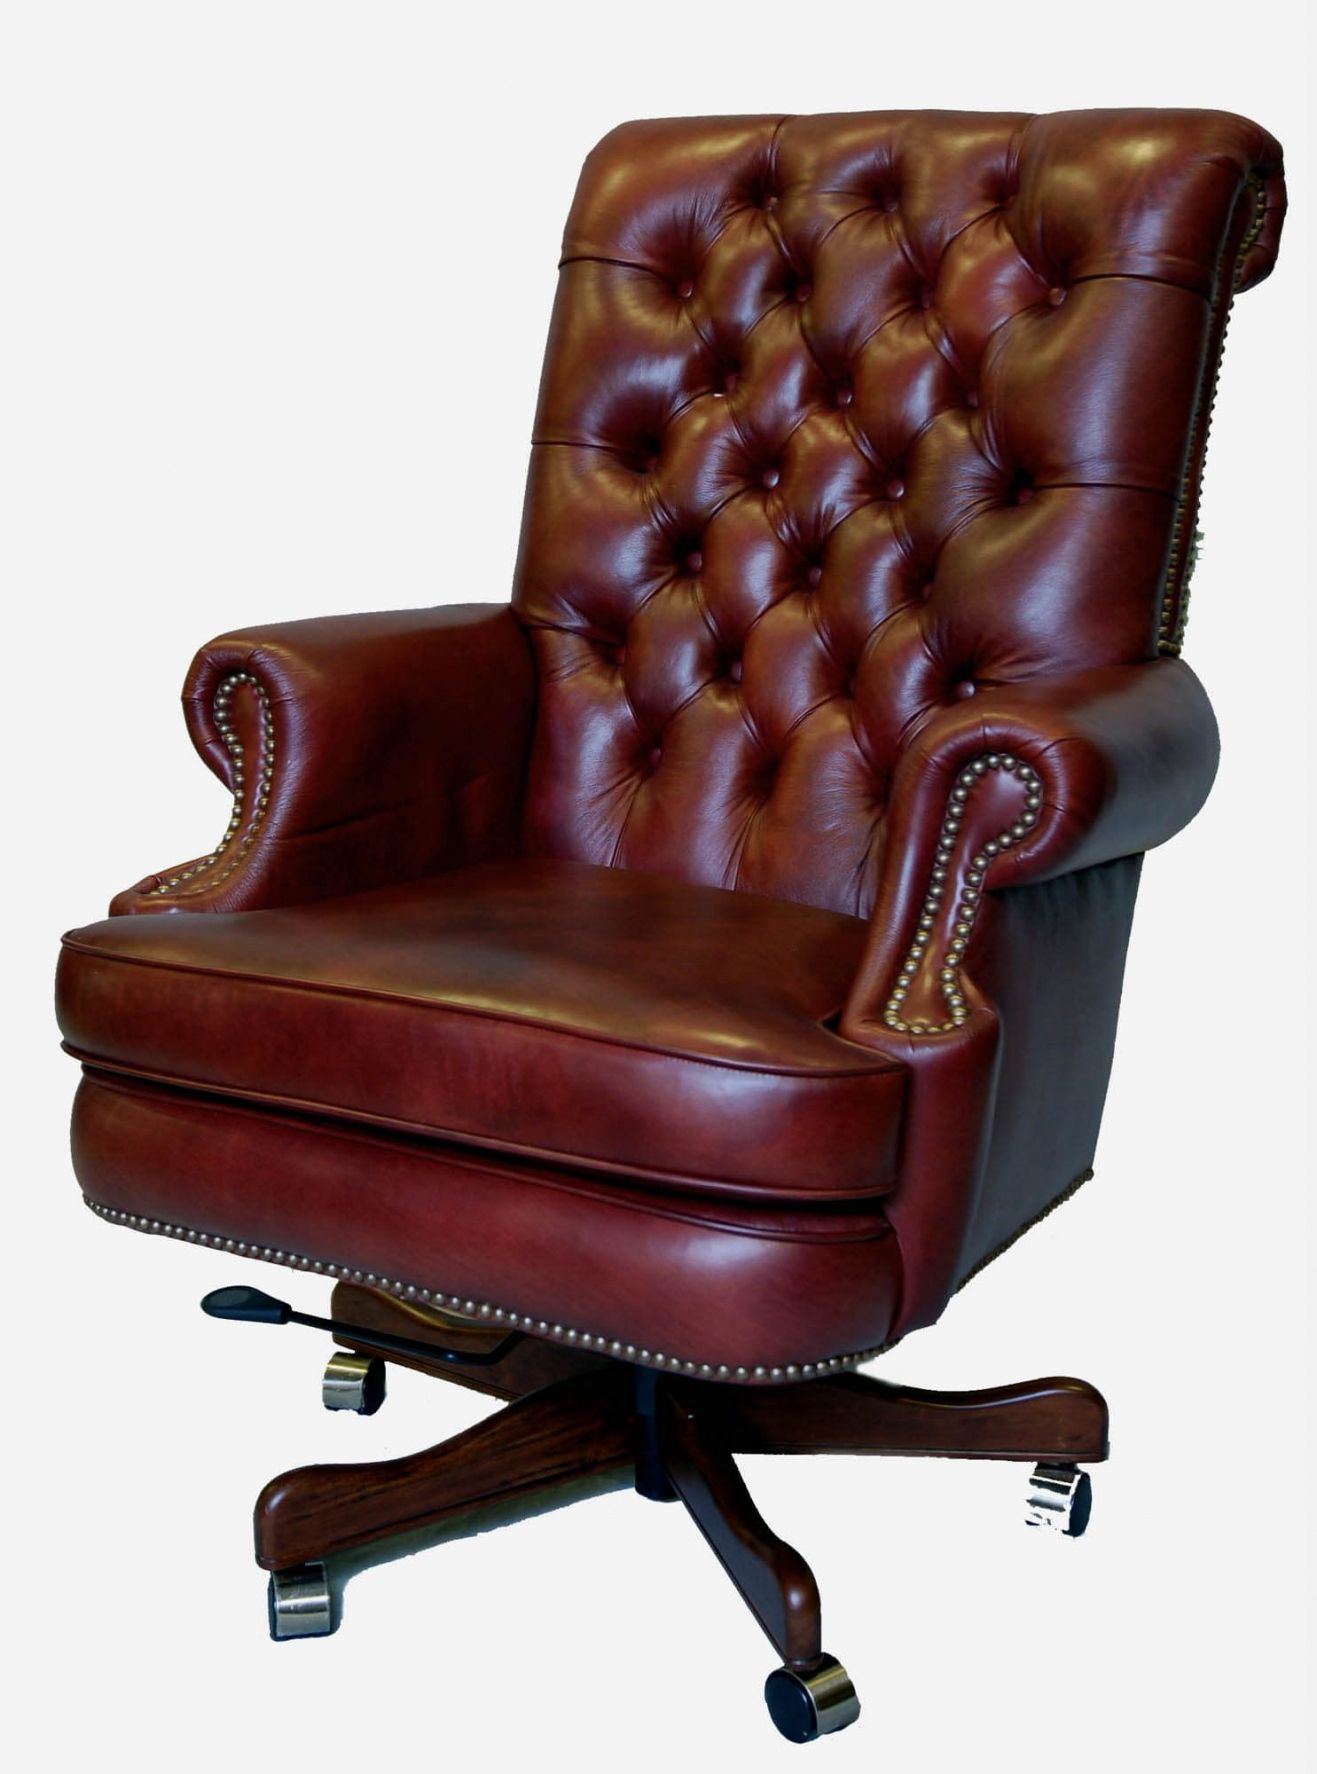 70 burgundy leather office chair cool furniture ideas check more